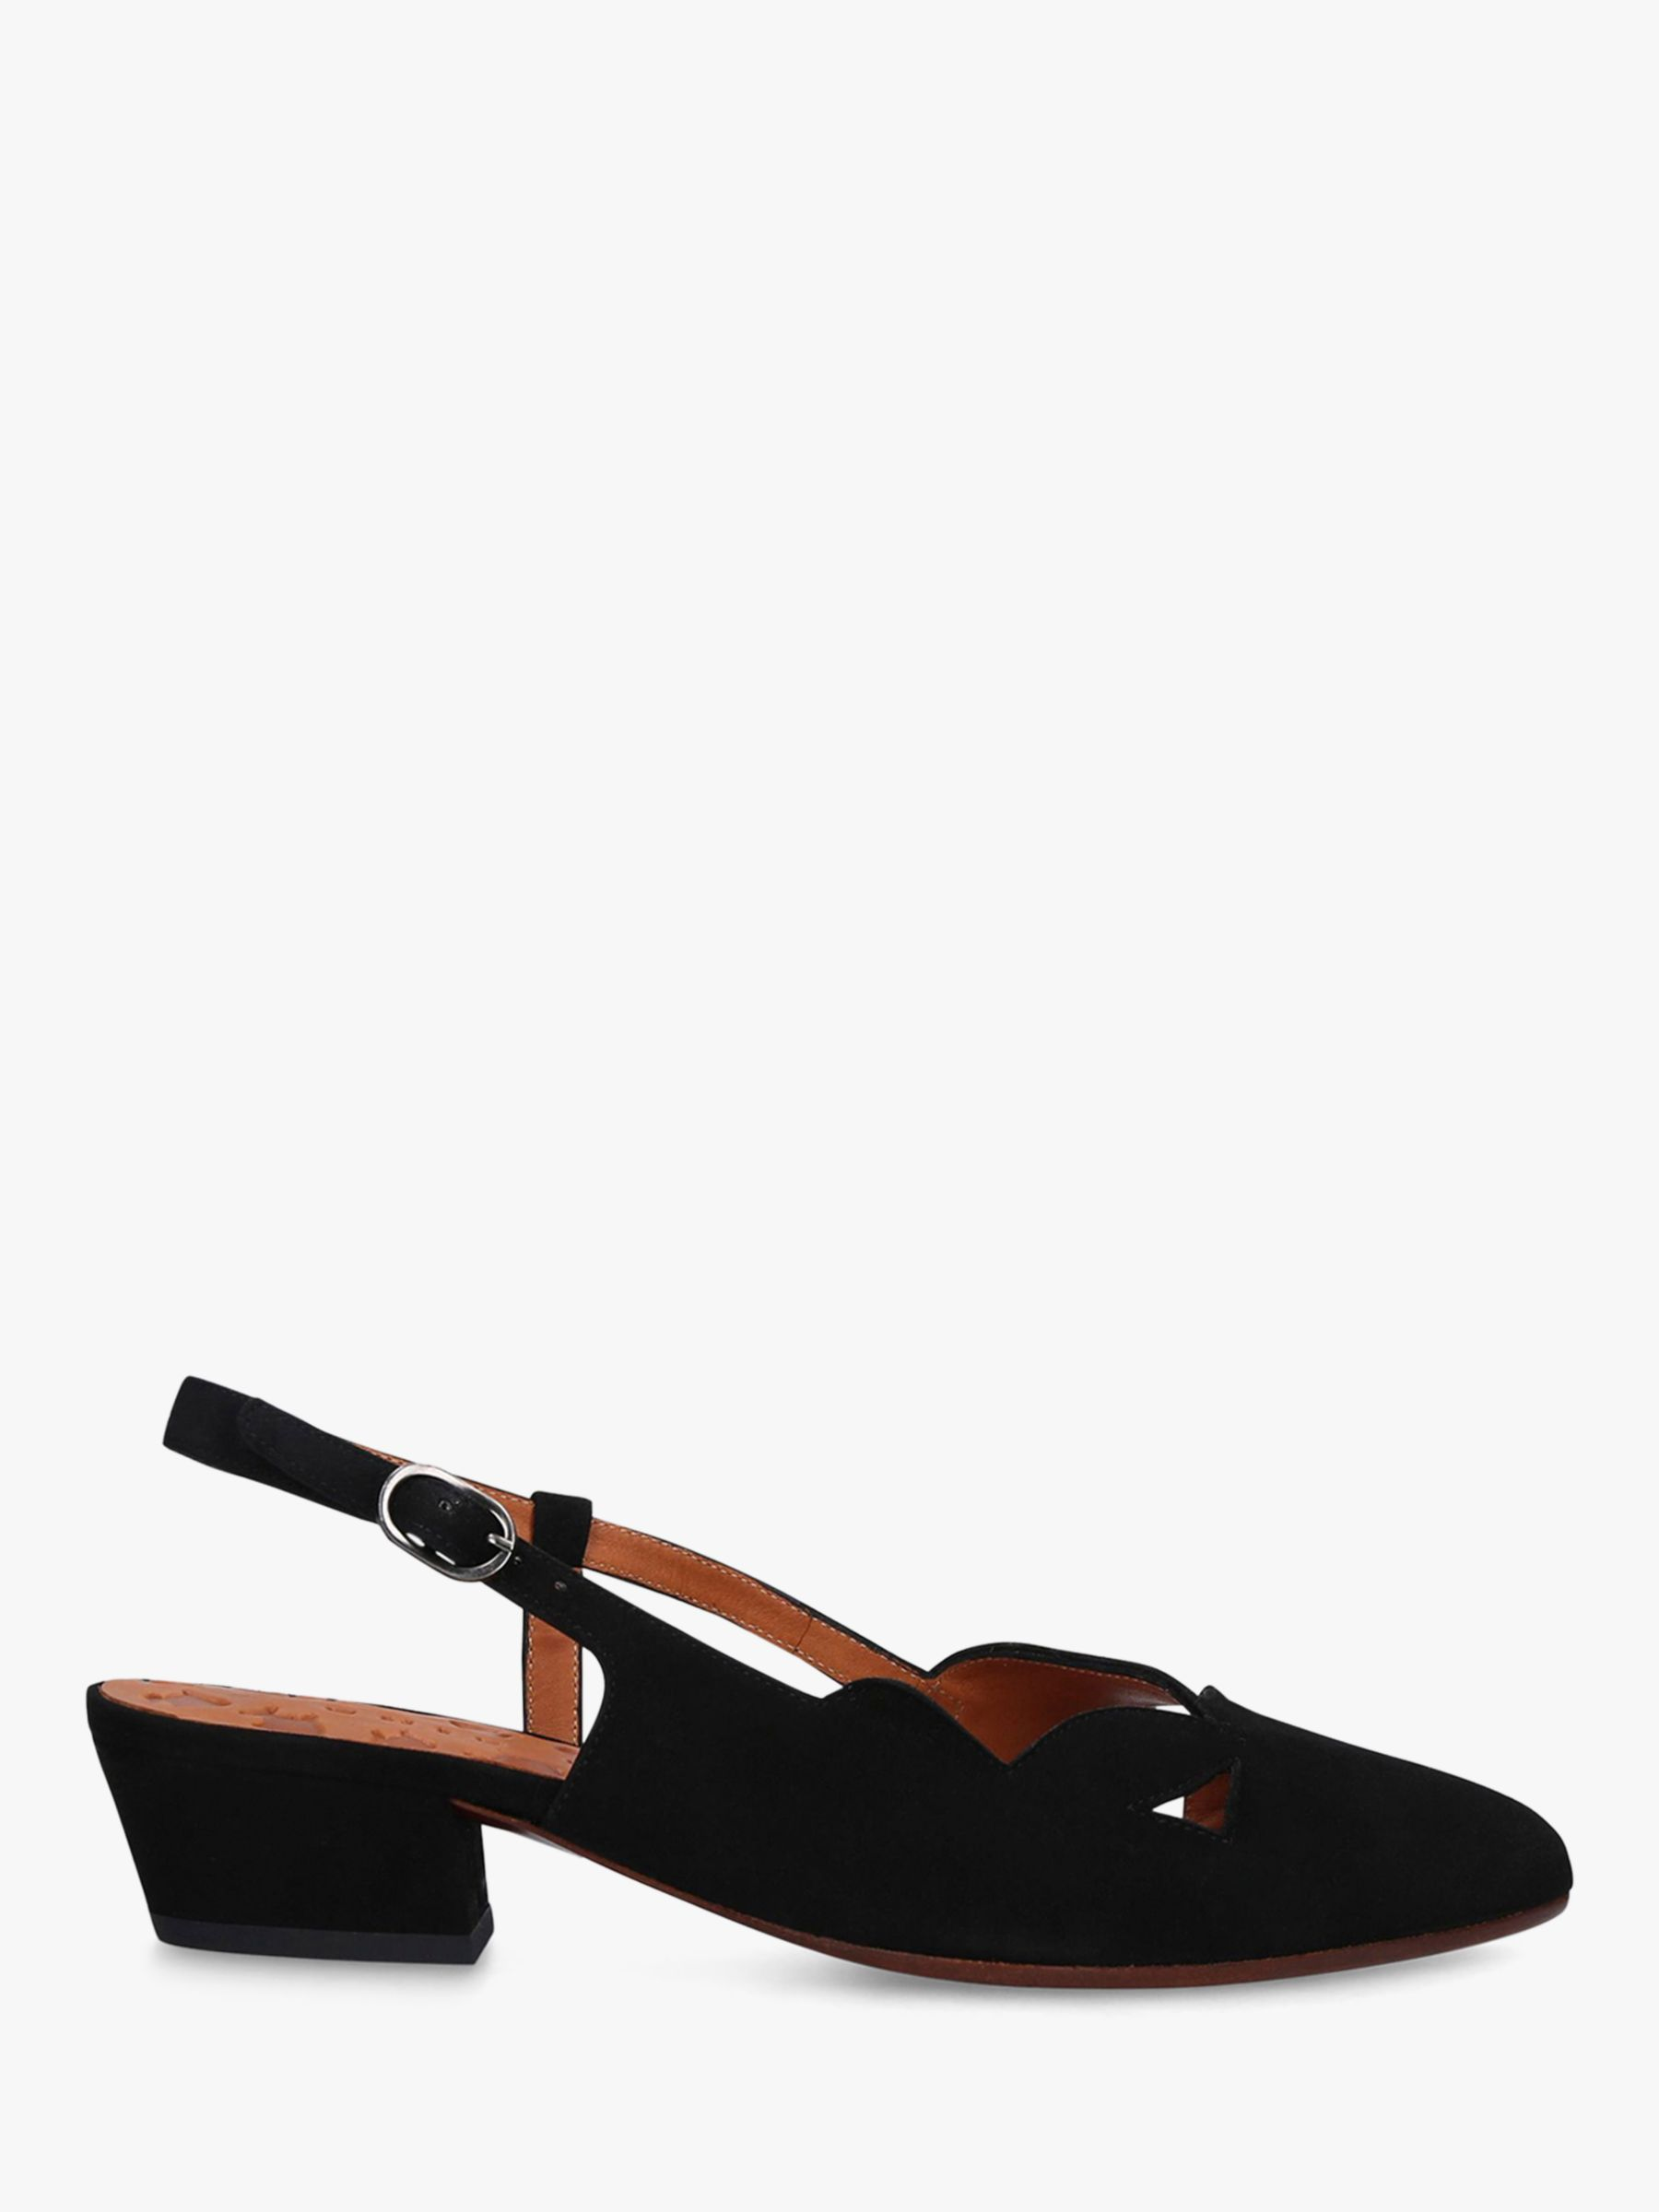 Chie Mihara Chie Mihara Rune Low Block Heel Slingback Suede Court Shoes, Black